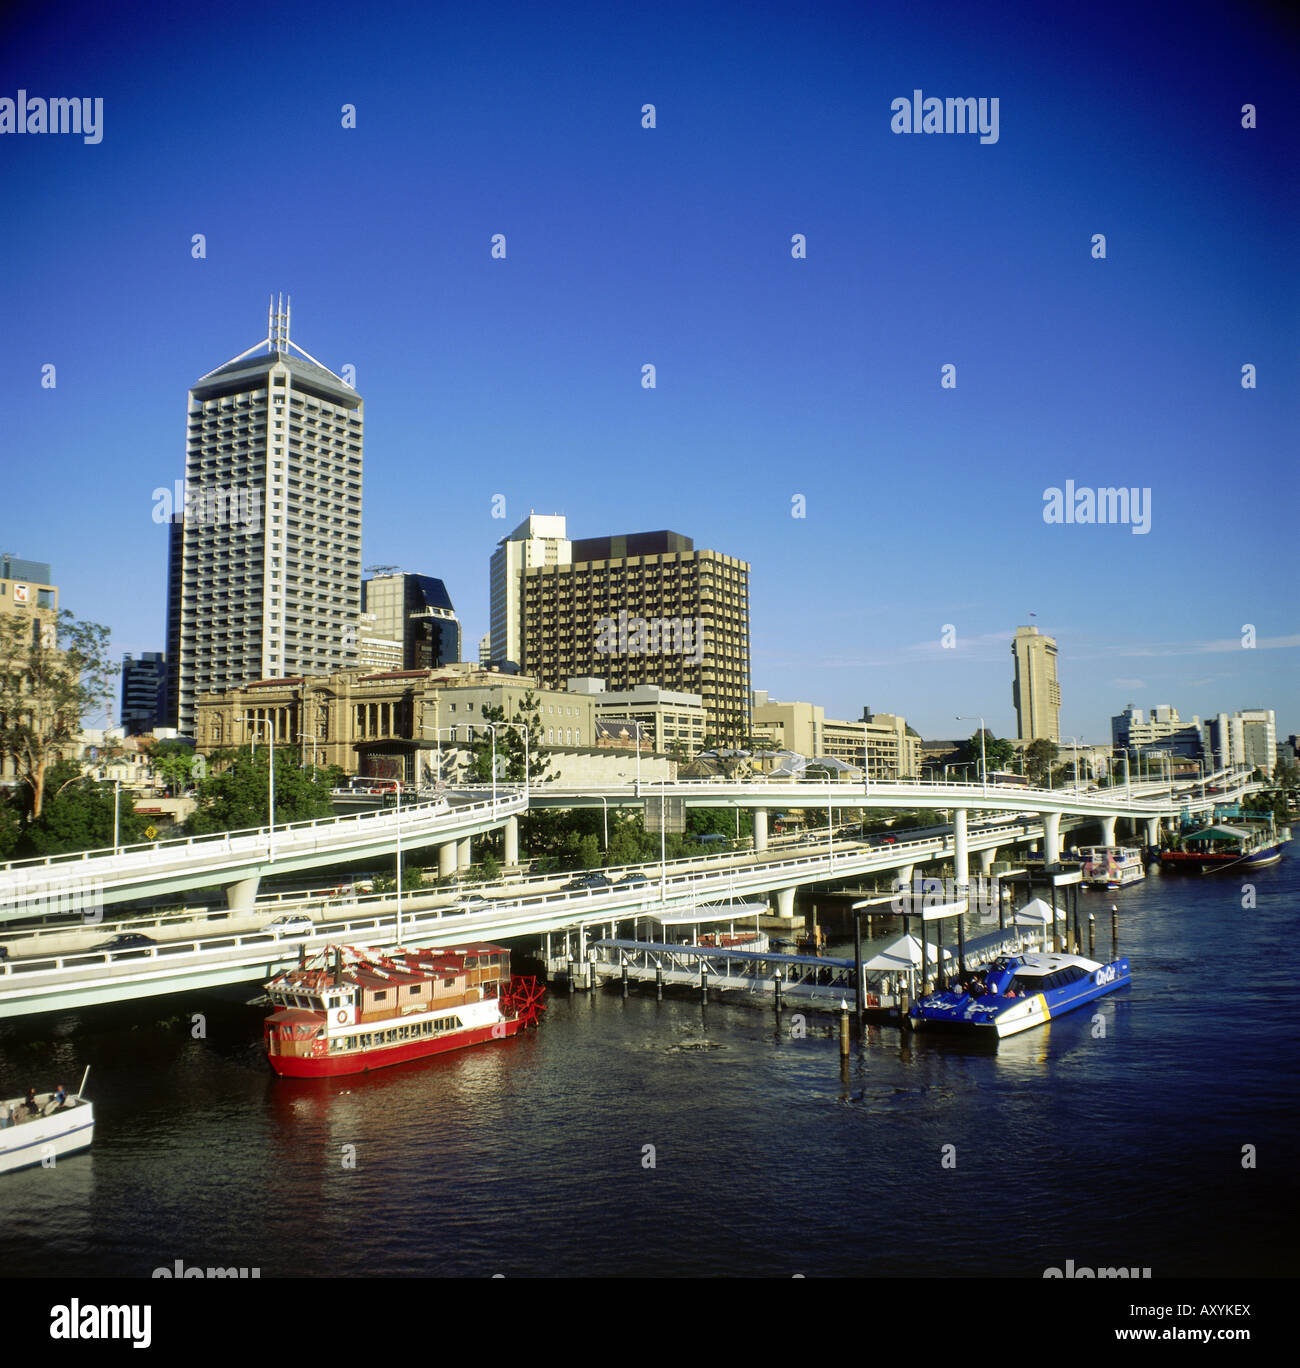 geography / travel, Australia, Queensland, Brisbane, city view, cityscape, water expressway, motorway, ships, Additional - Stock Image